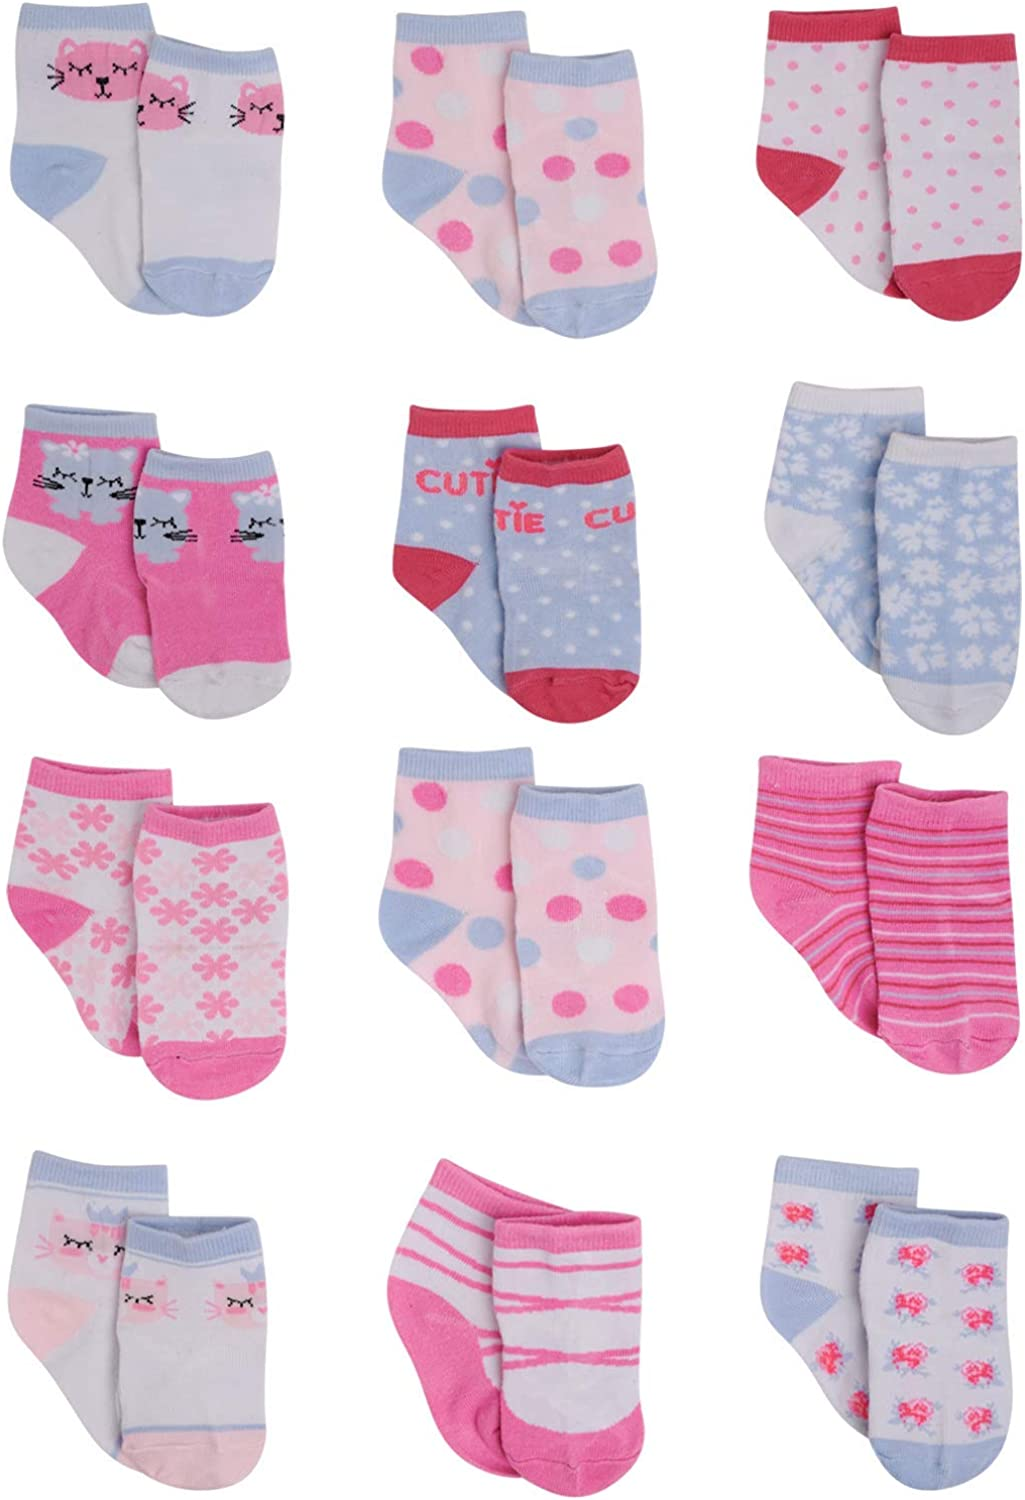 Rising Star Baby Girls Ankle Sock with Character Designs: Unicorn, Kitty and Hearts 12 Pack (Newborn and Infants)